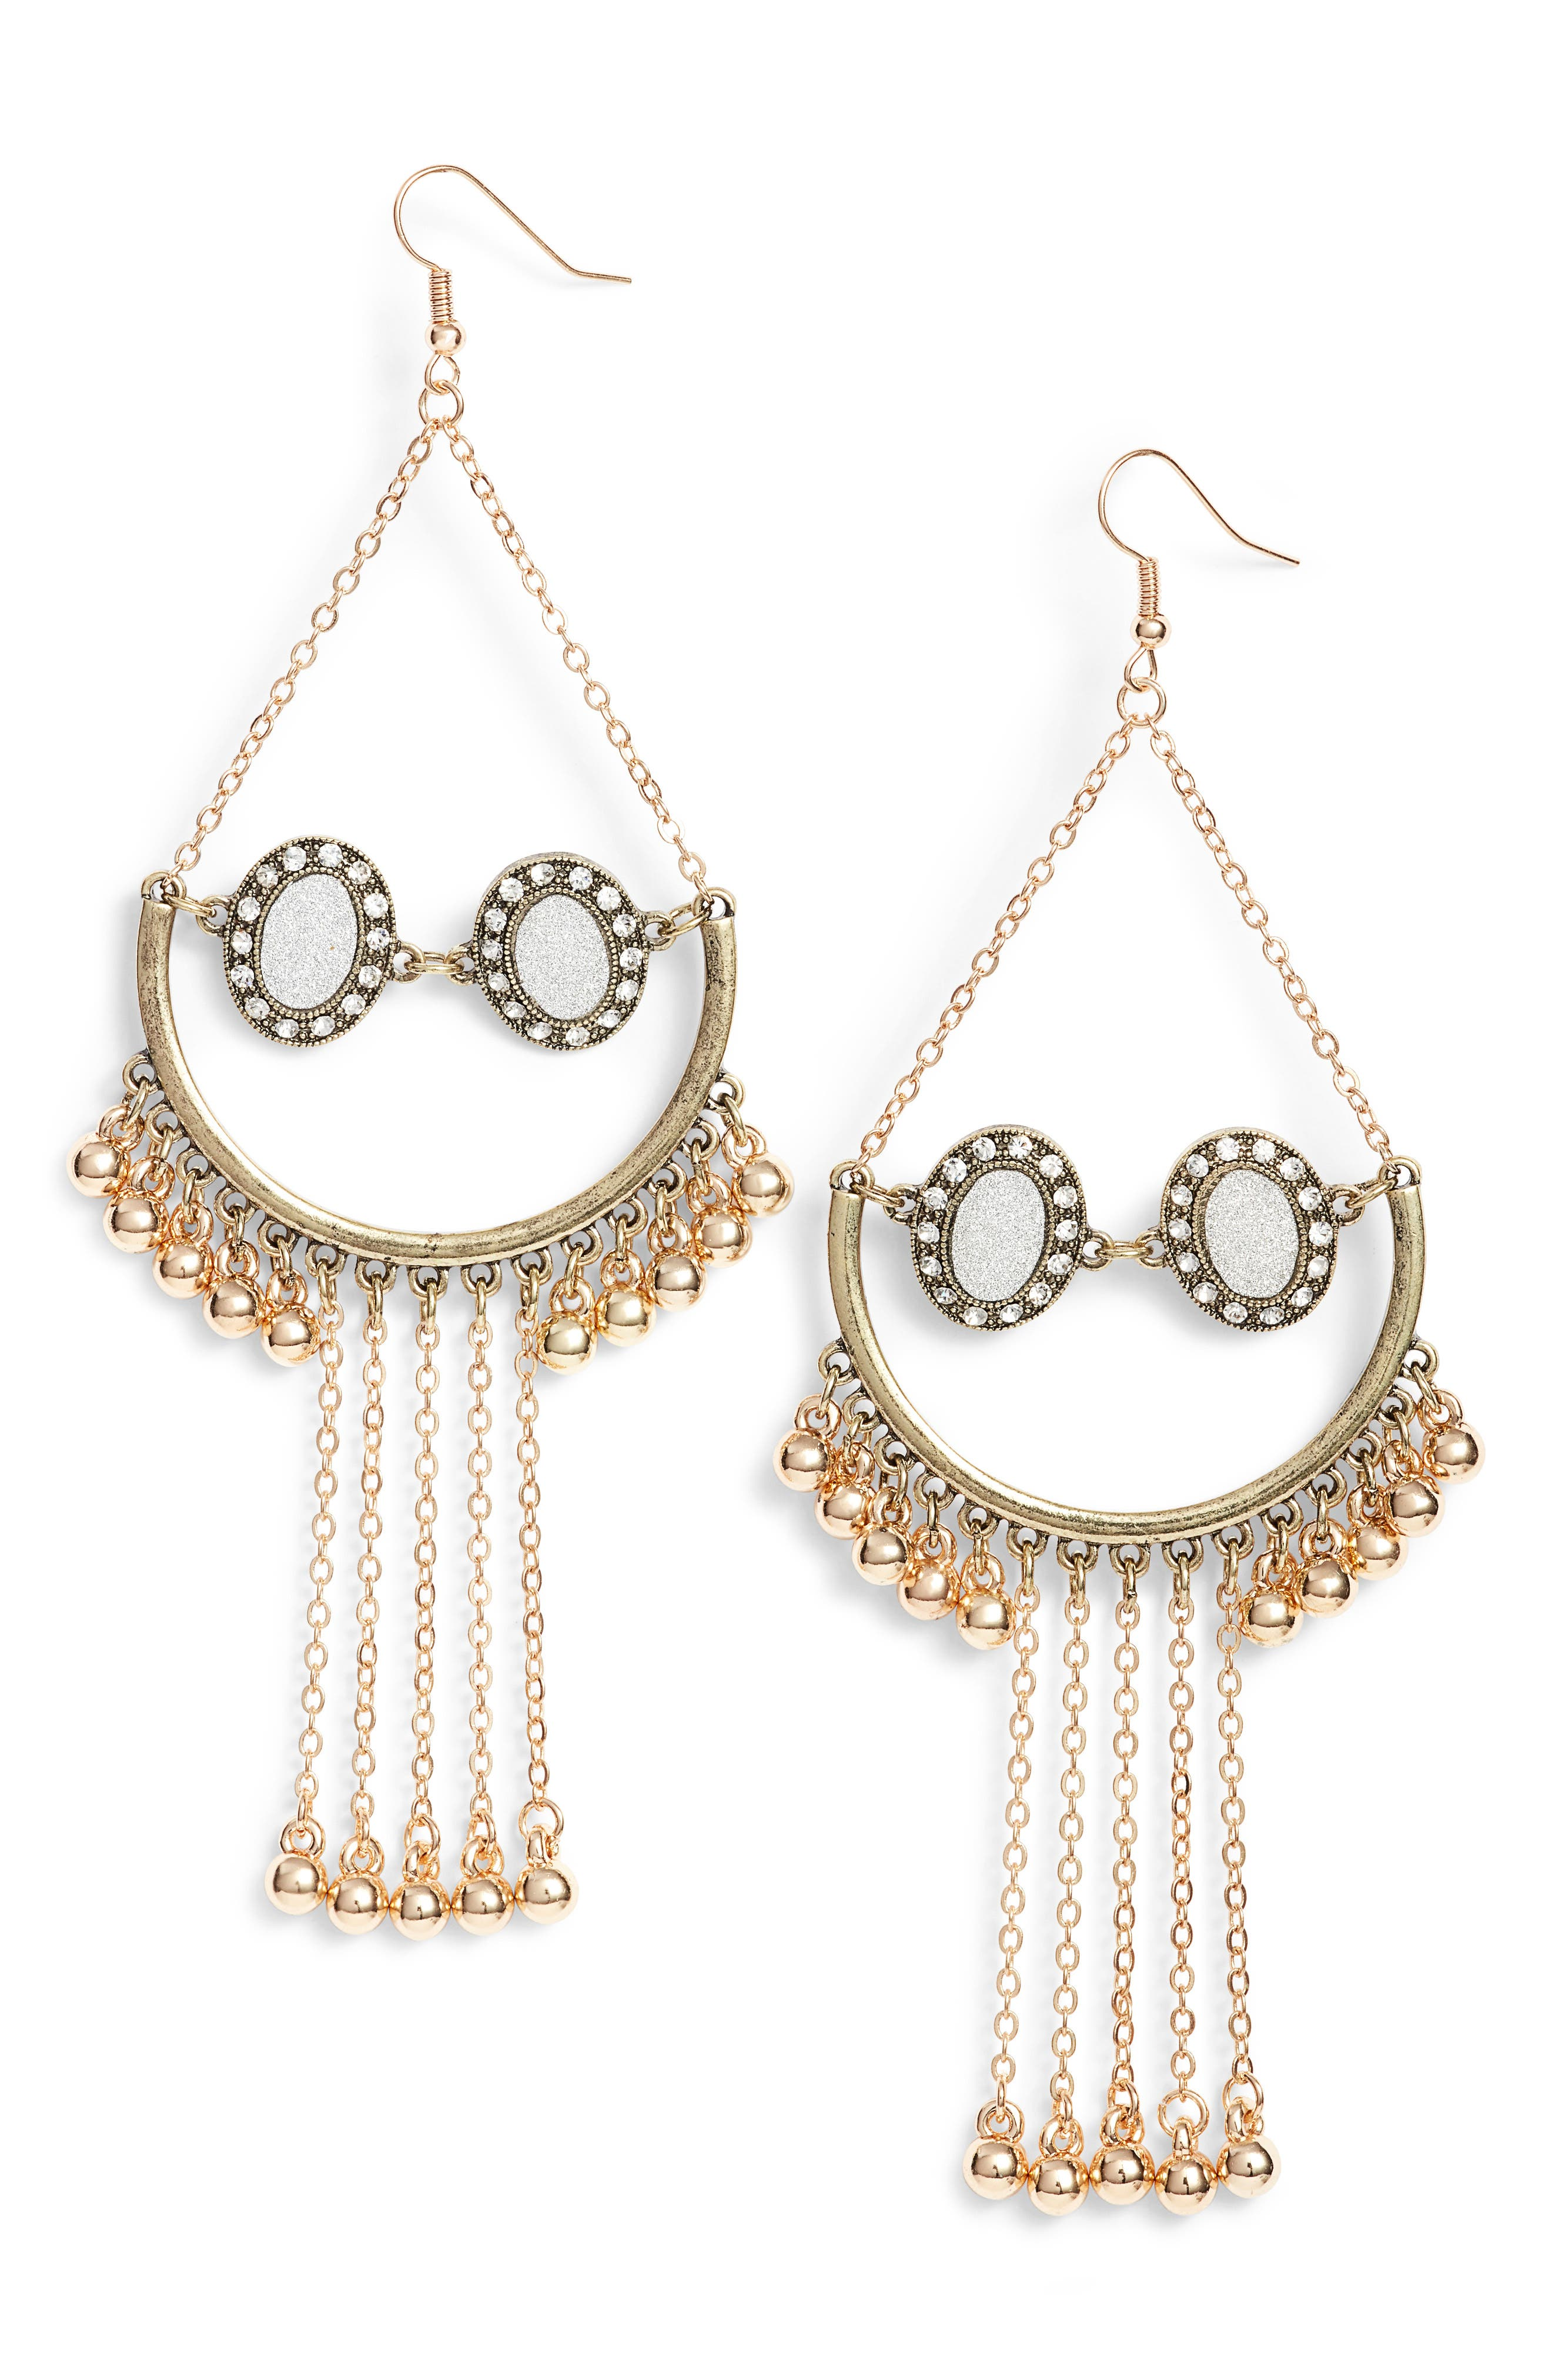 Main Image - BP. Tassel Statement Earrings